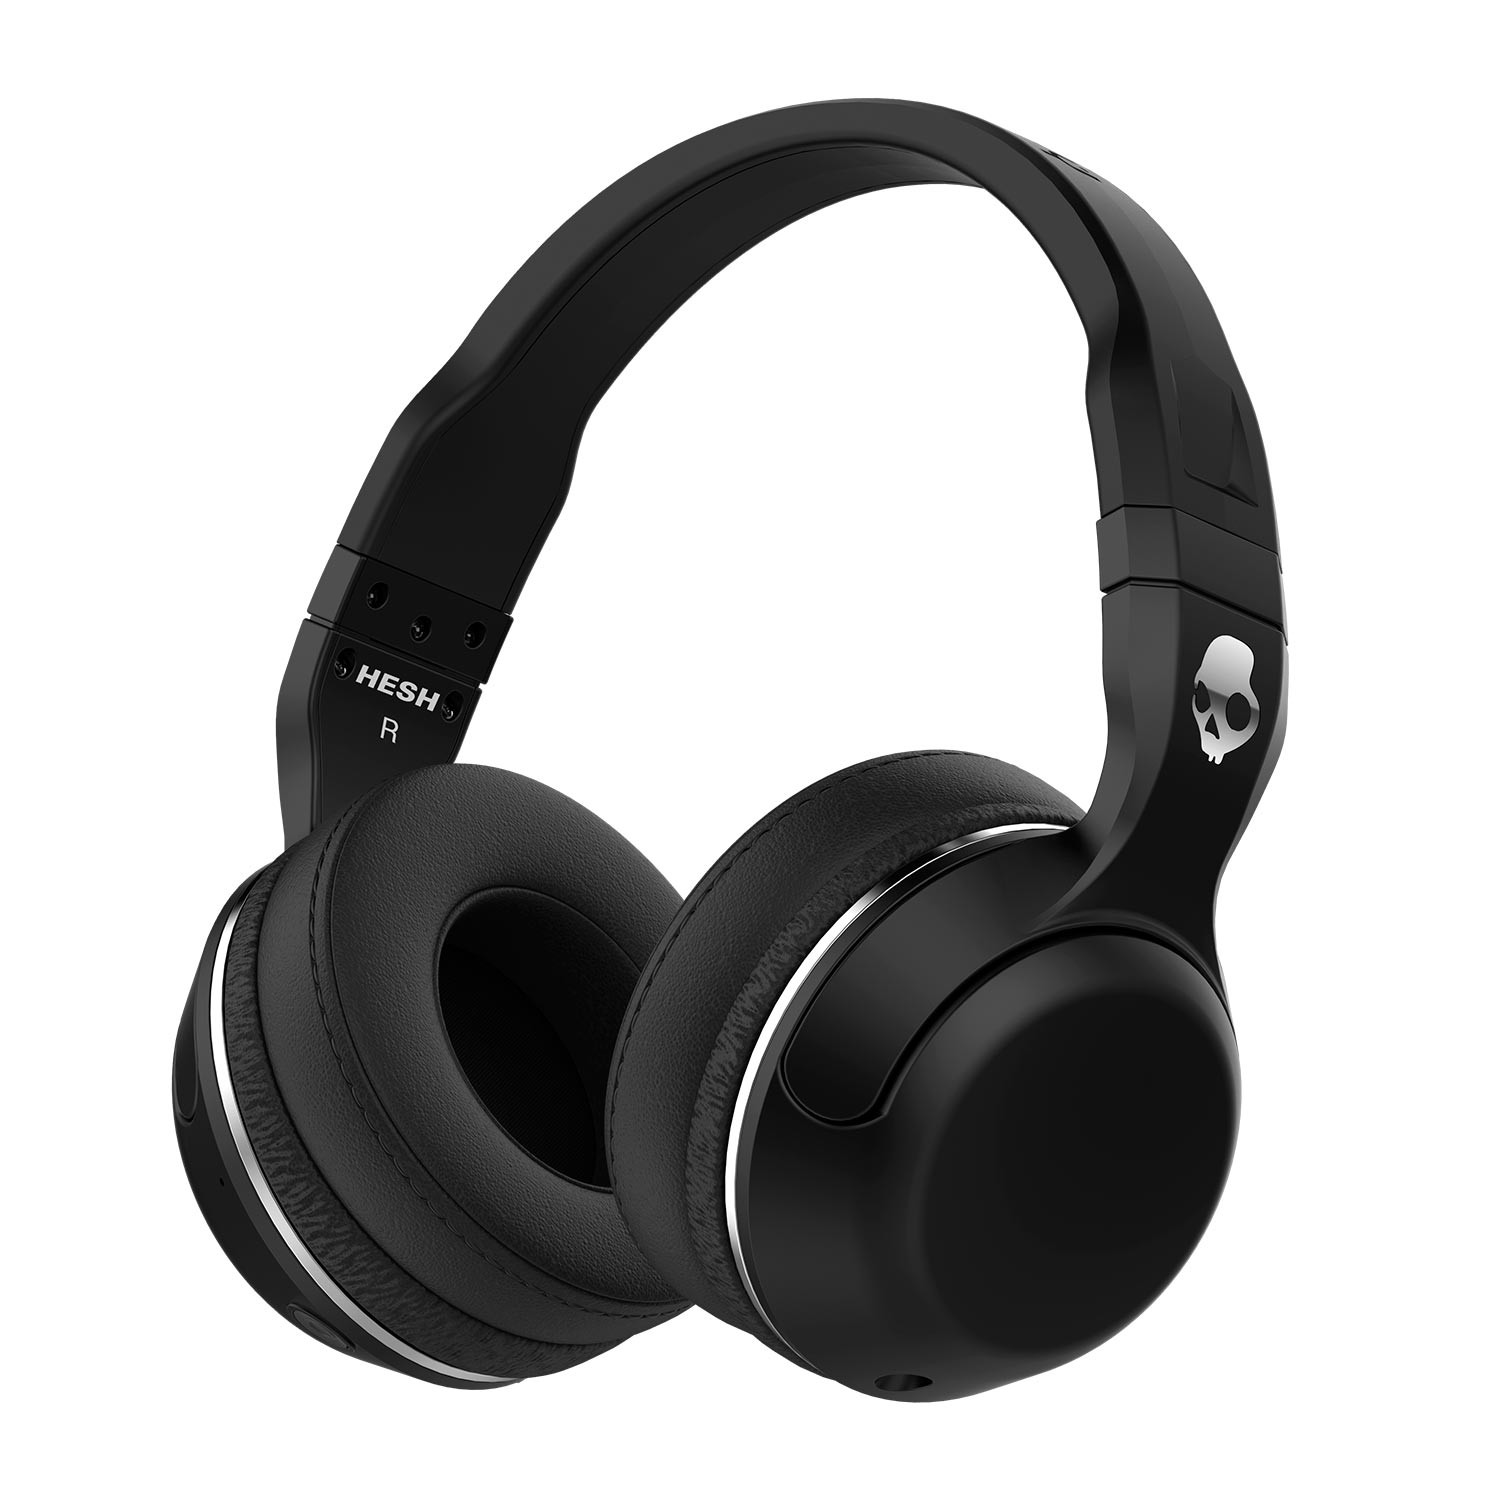 Sluchátka Skullcandy Hesh 2 Wireless black